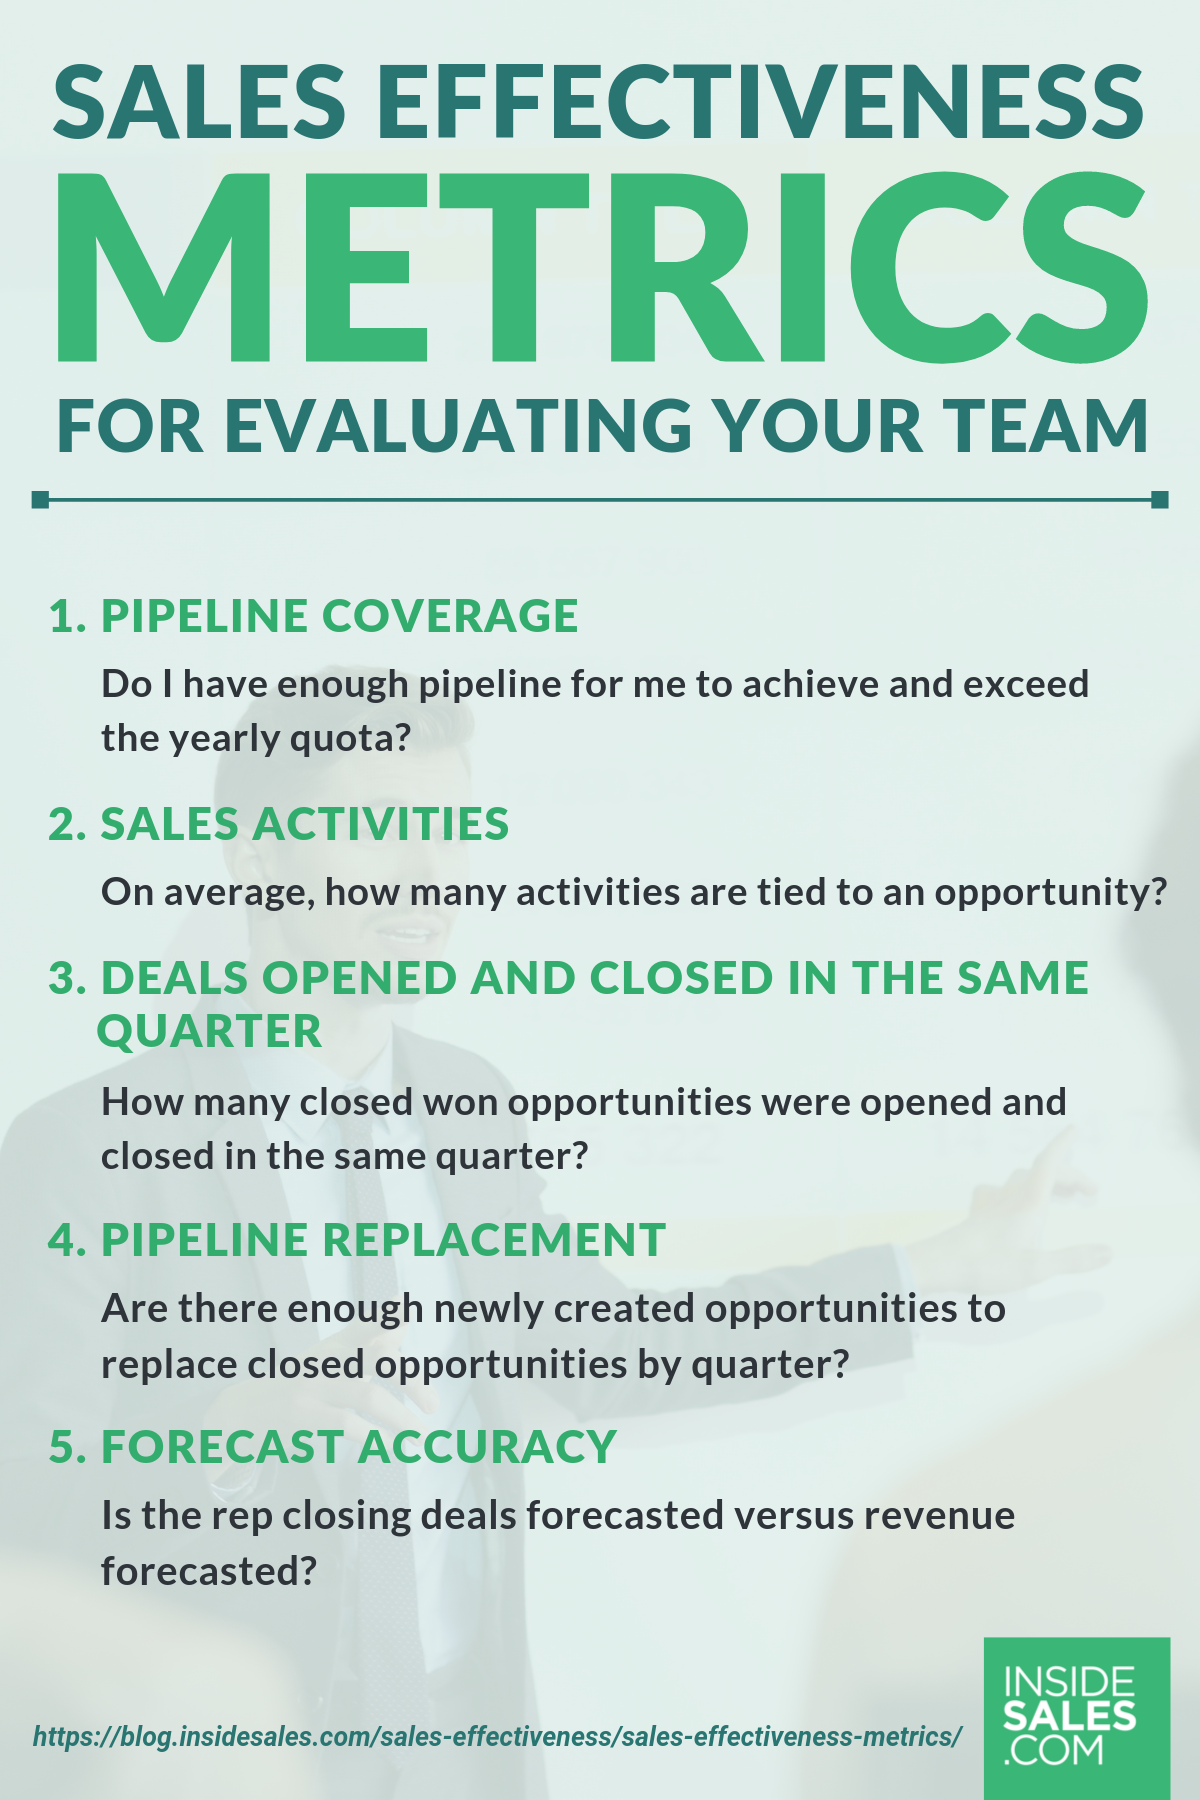 Sales Effectiveness Metrics For Evaluating Your Team Infographic